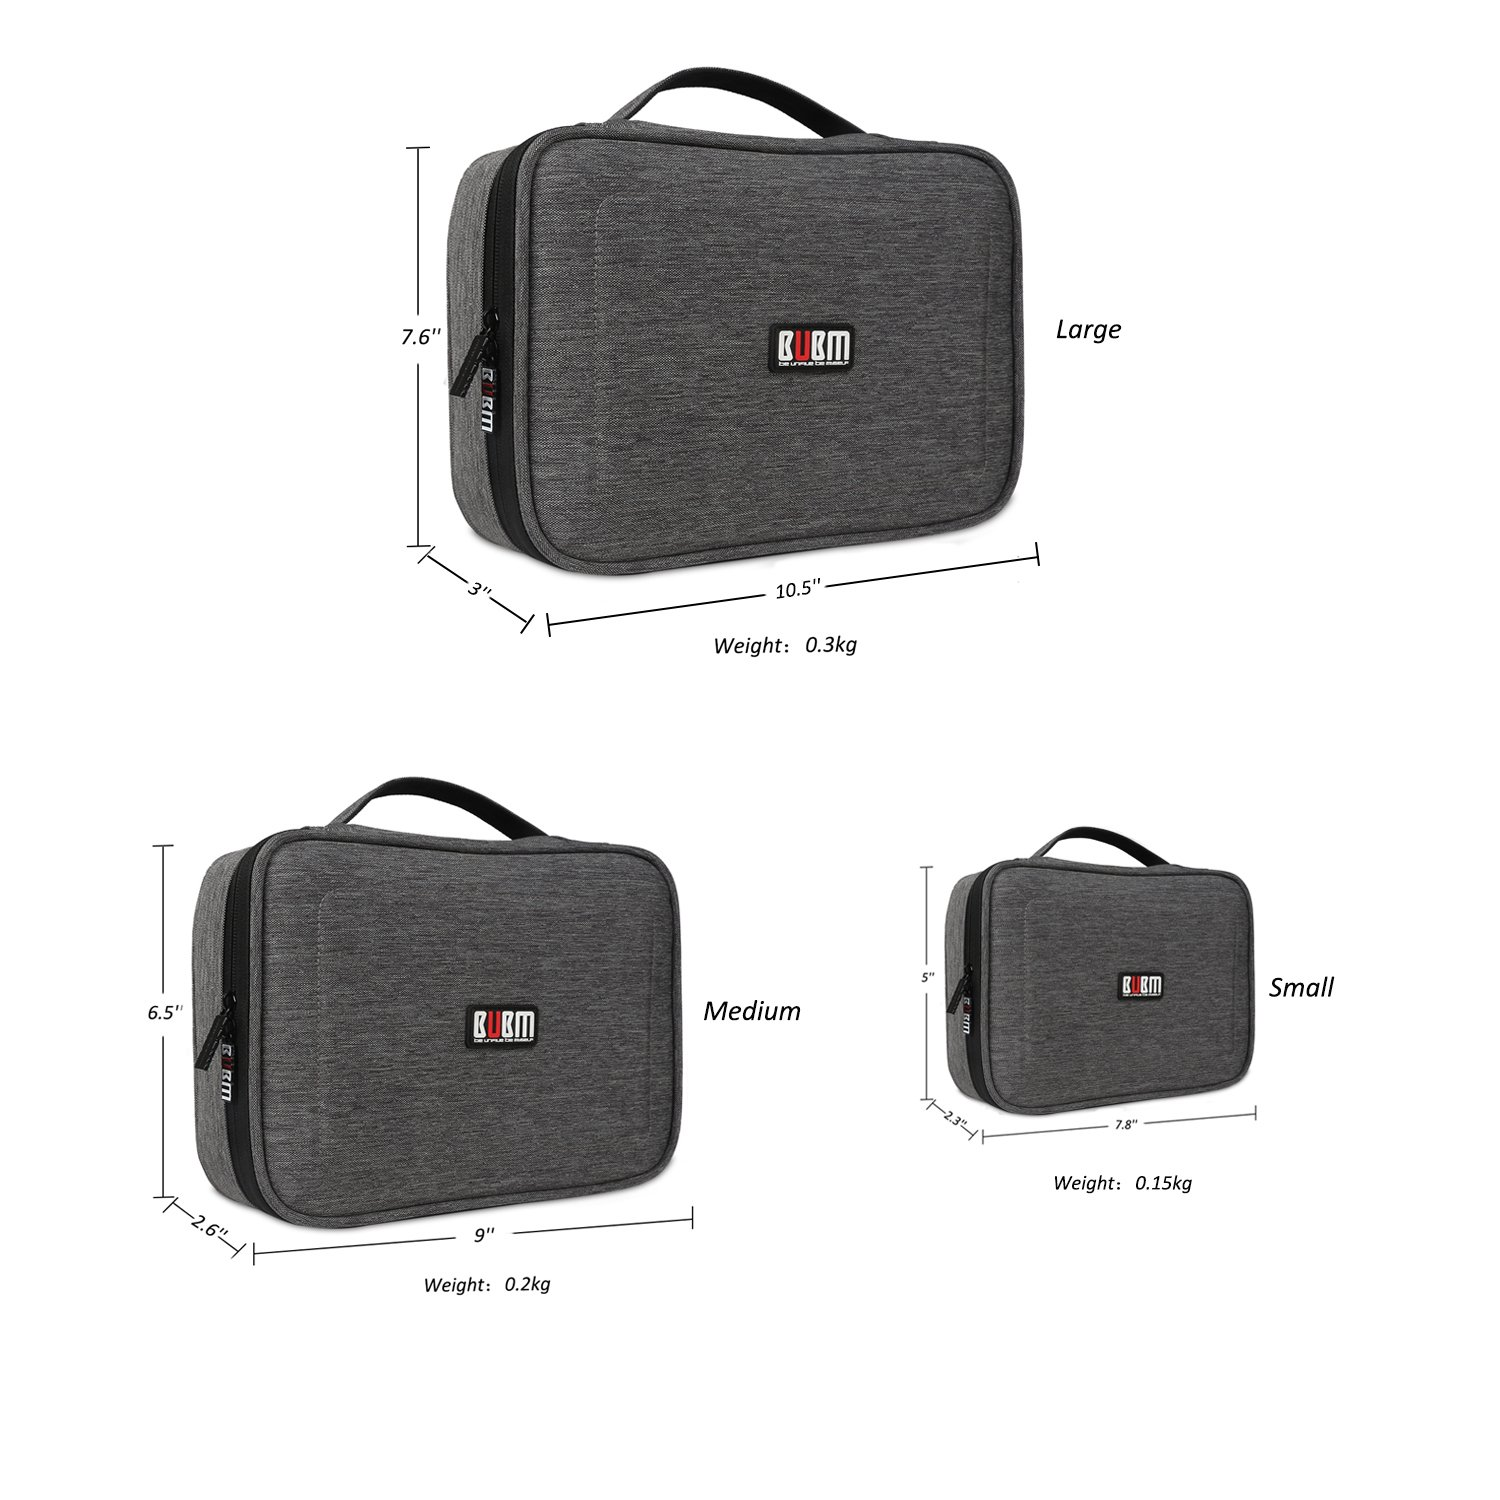 BUBM 3Pcs Electronic Travel Organizer, Portable Gadget Carrying Bag Gear Storage Organizer for Cables, USB Flash Drive, Battery, Adapter and More, Roomy and Compact,Denim Gray by BUBM (Image #3)